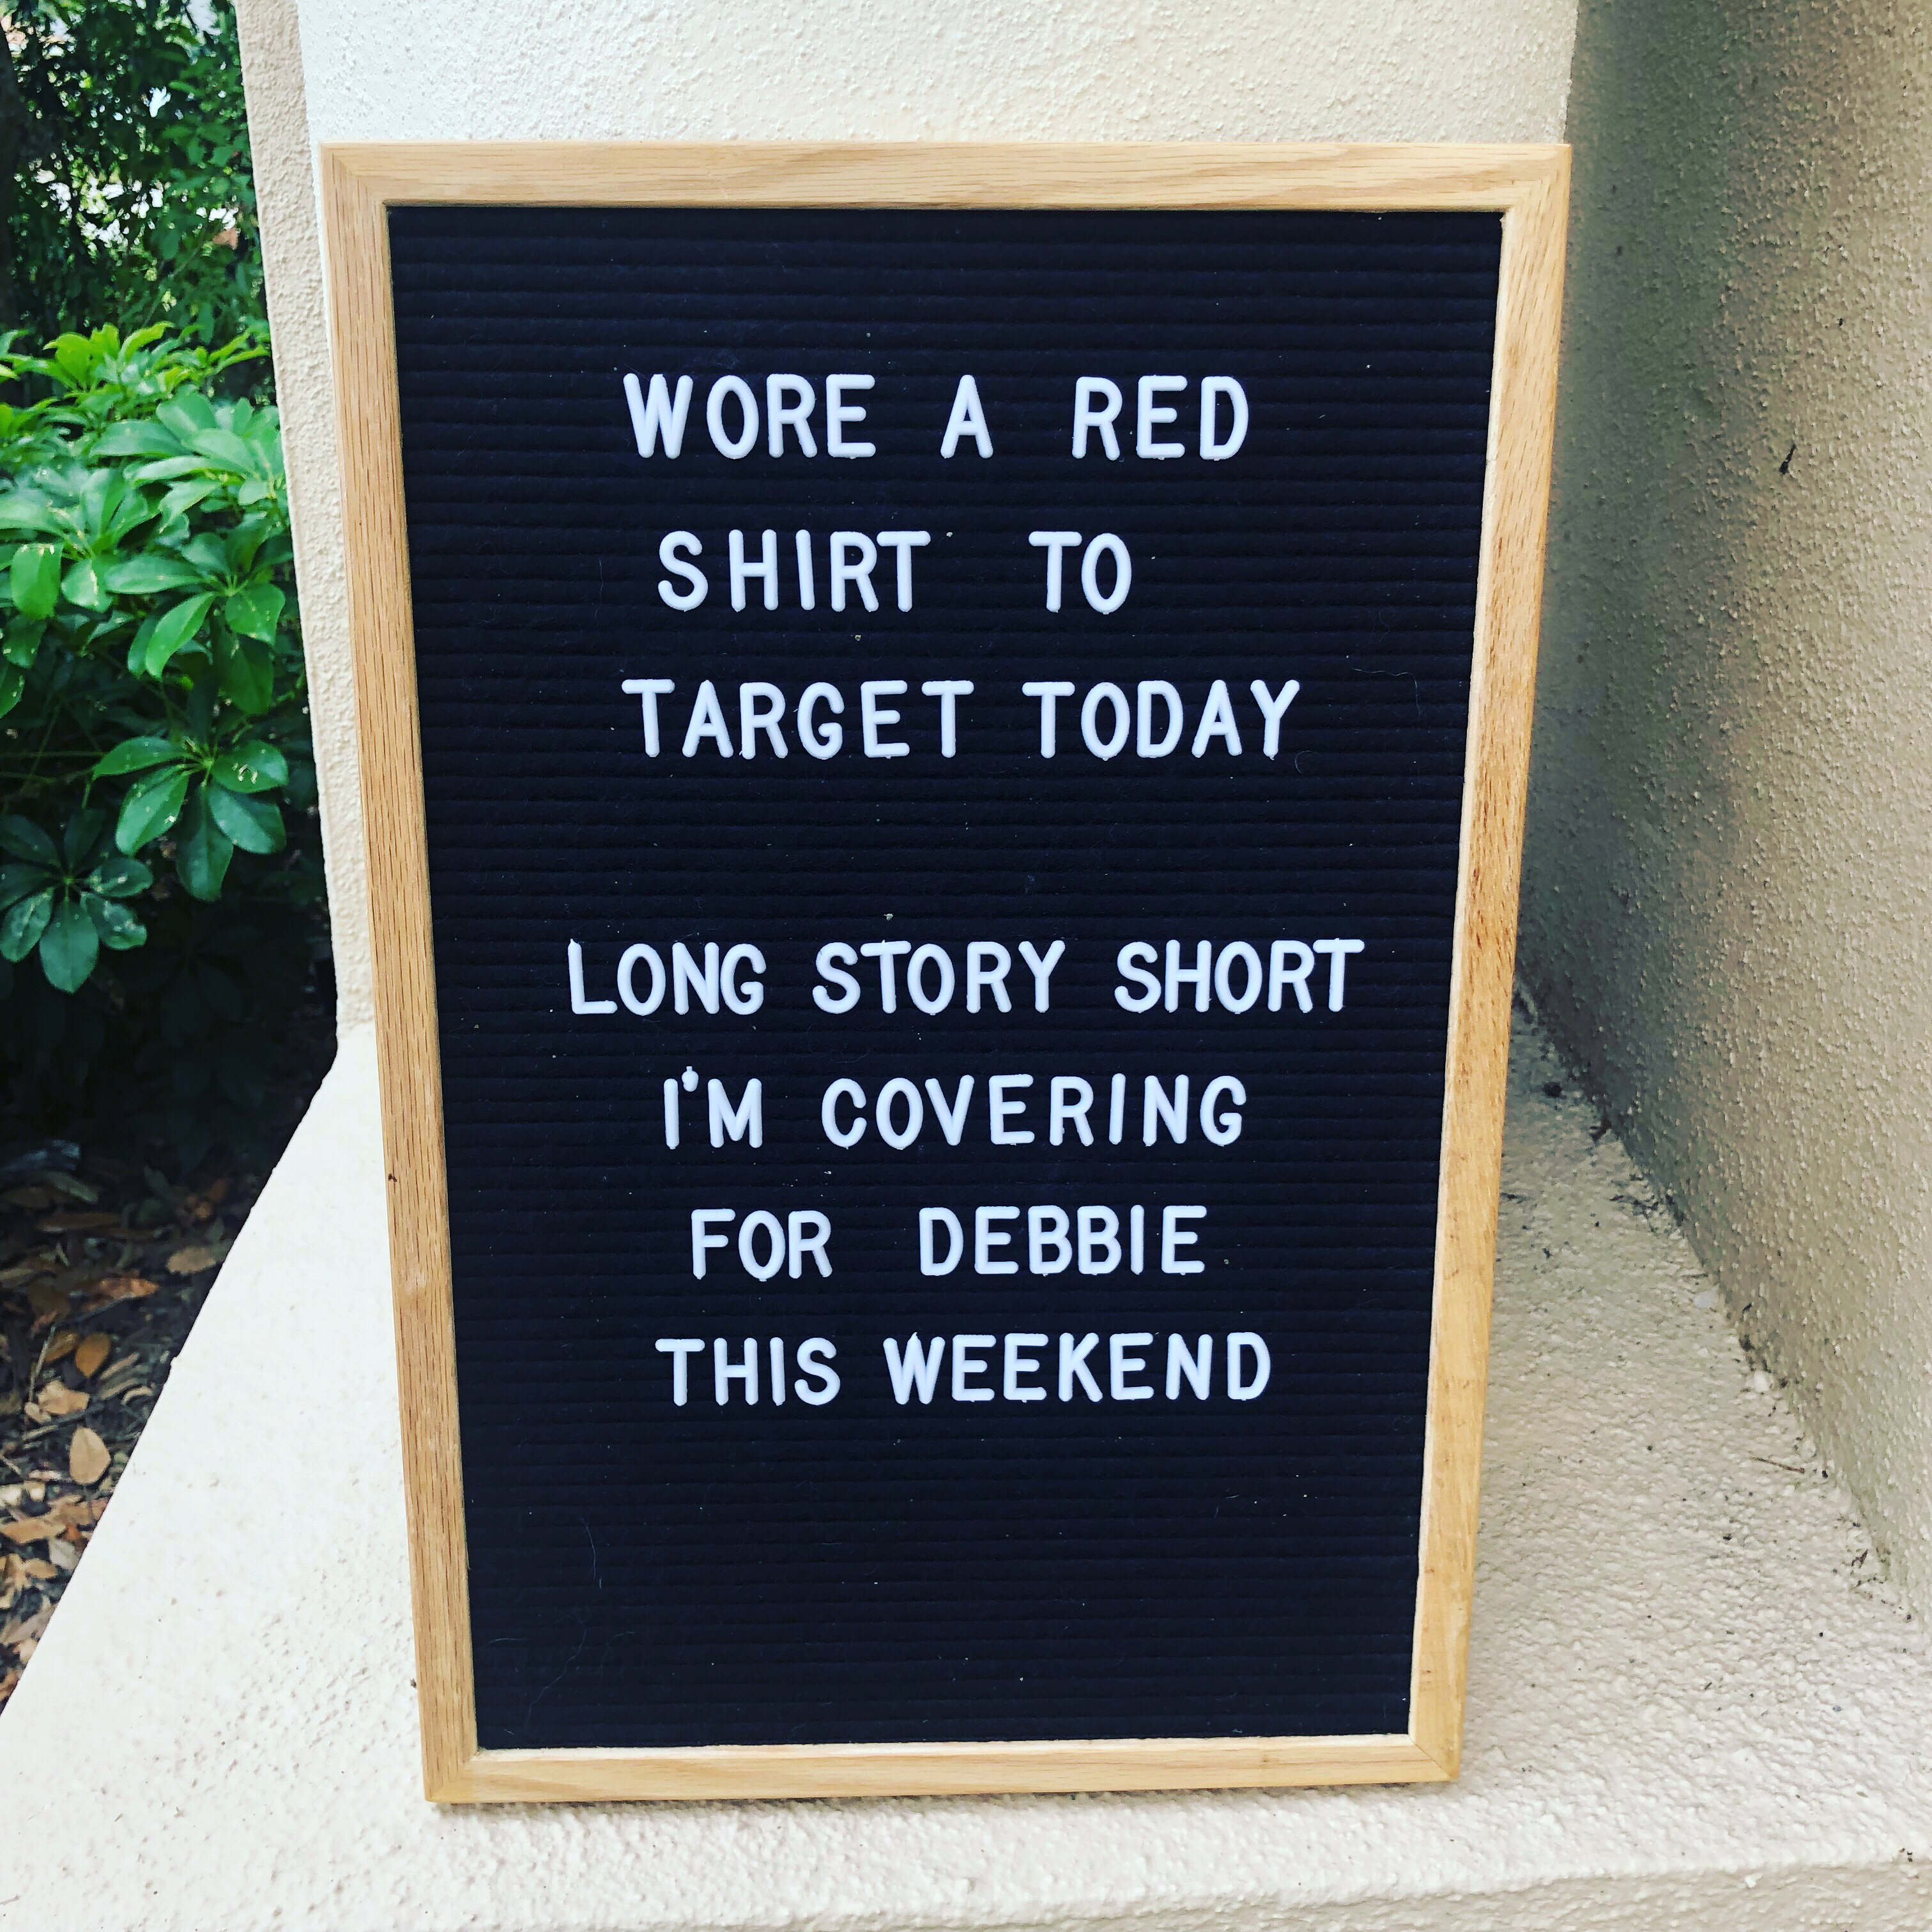 Wore a red shirt to target today, long story short I'm covering for Debbie